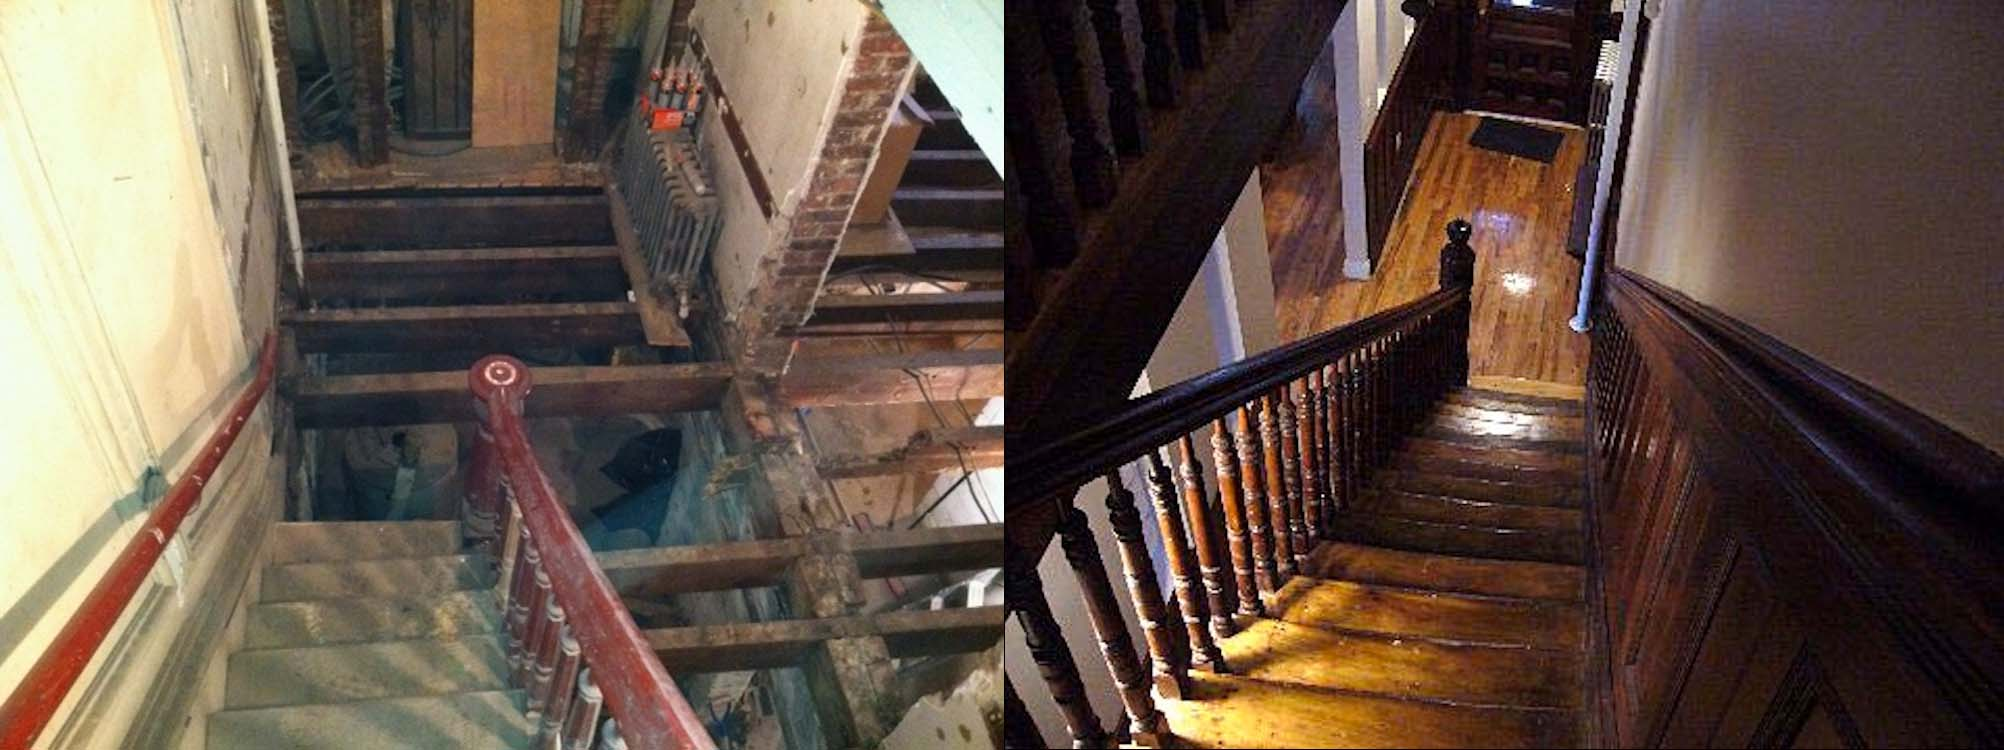 Harlem Brownstone Renovation:  In this project, we completed a complete gut renovation to bring an old, dilapidated brownstone back to life, with exposed brick and beautiful woodwork. Click on the photo to see a full gallery of images.